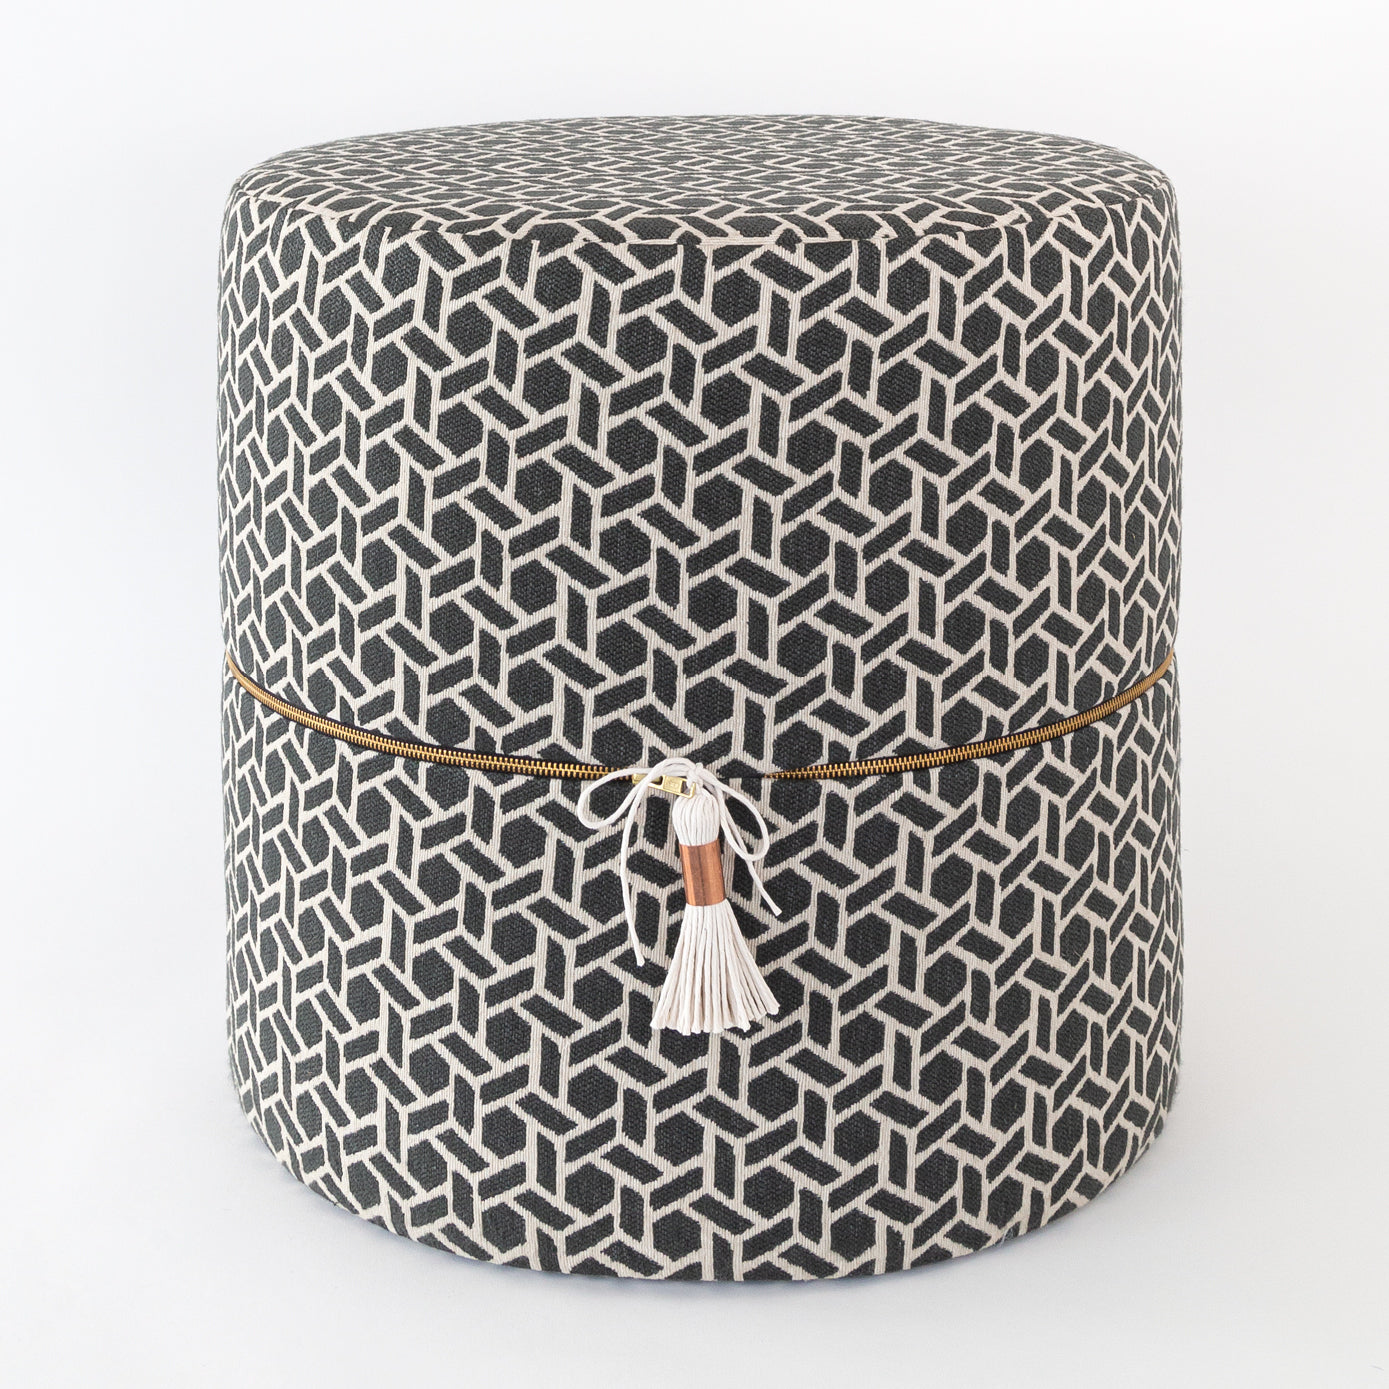 Remarkable Reed Round Ottoman Stool Charcoal Machost Co Dining Chair Design Ideas Machostcouk